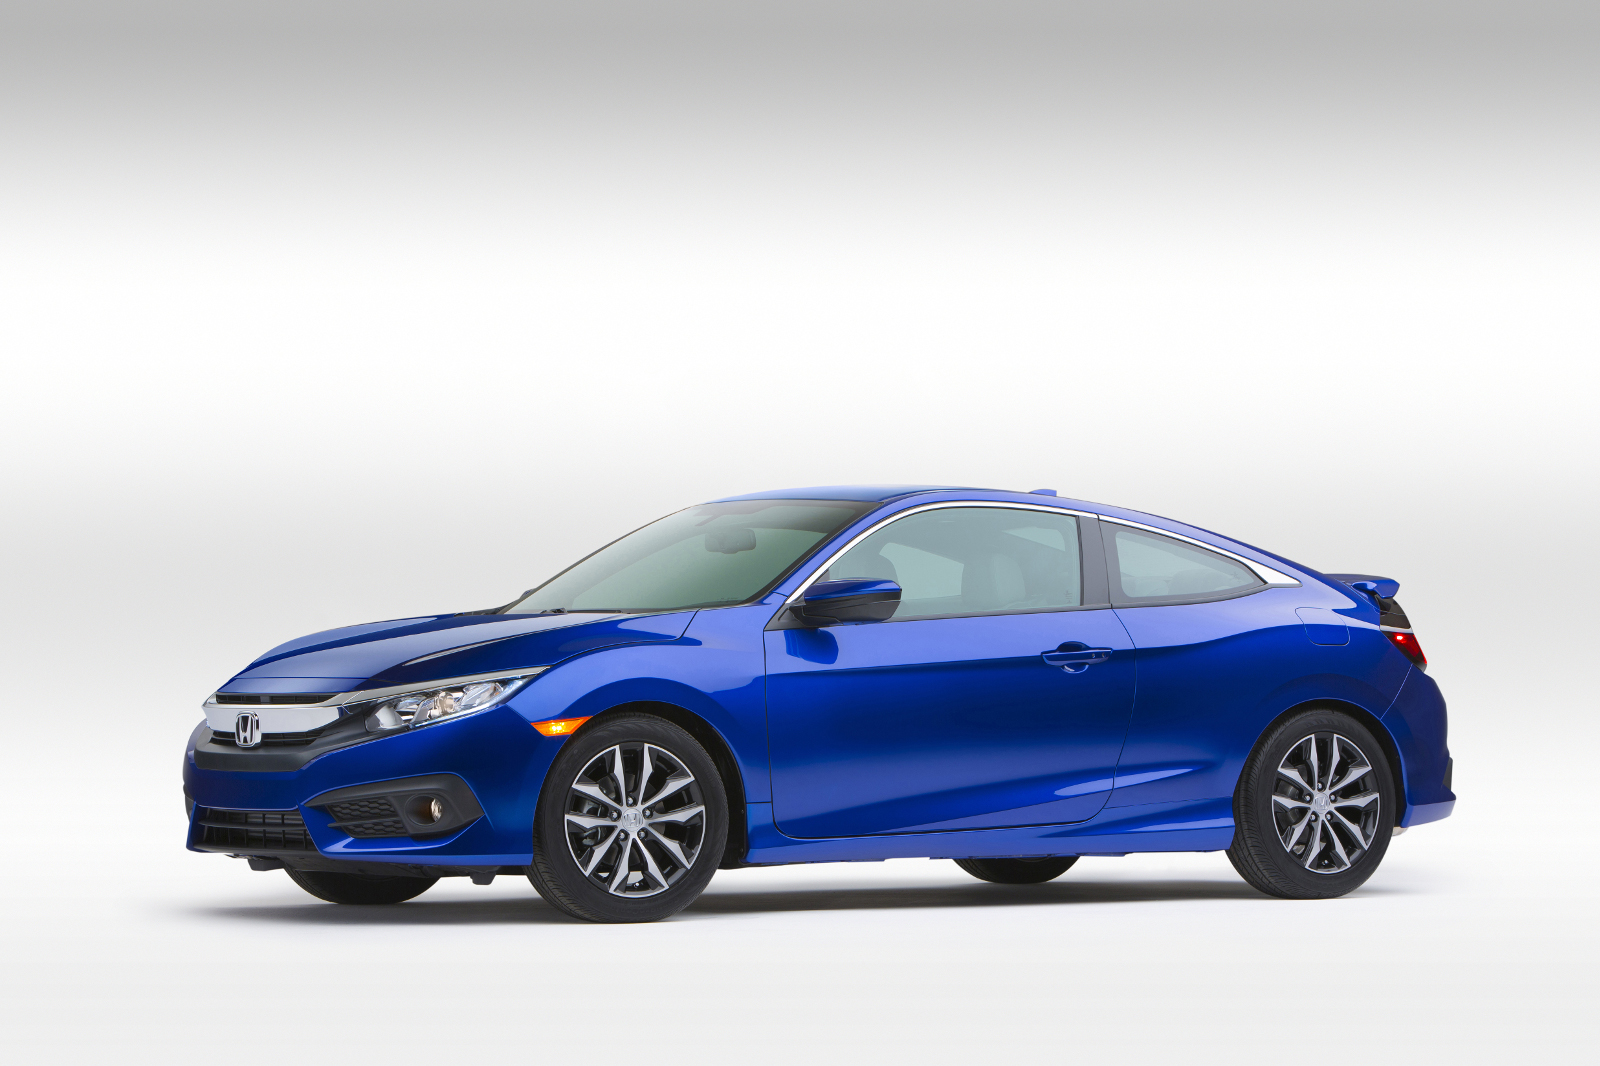 [Image: S0-Honda-Civic-Coupe-officielle-366725.jpg]